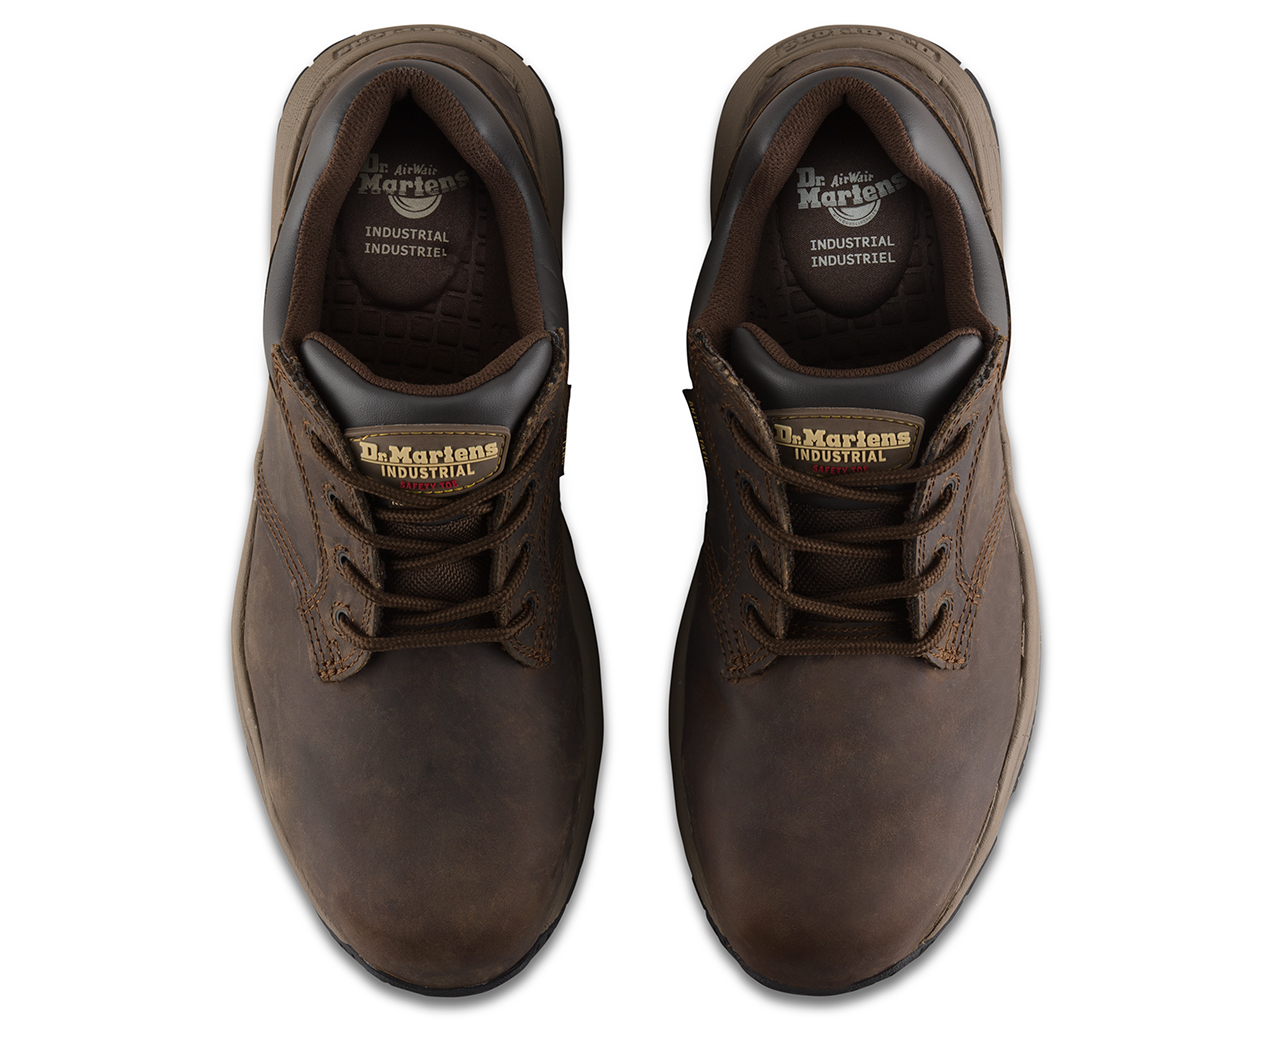 Linnet Sd Safety Toe Work Boots Amp Shoes Official Dr